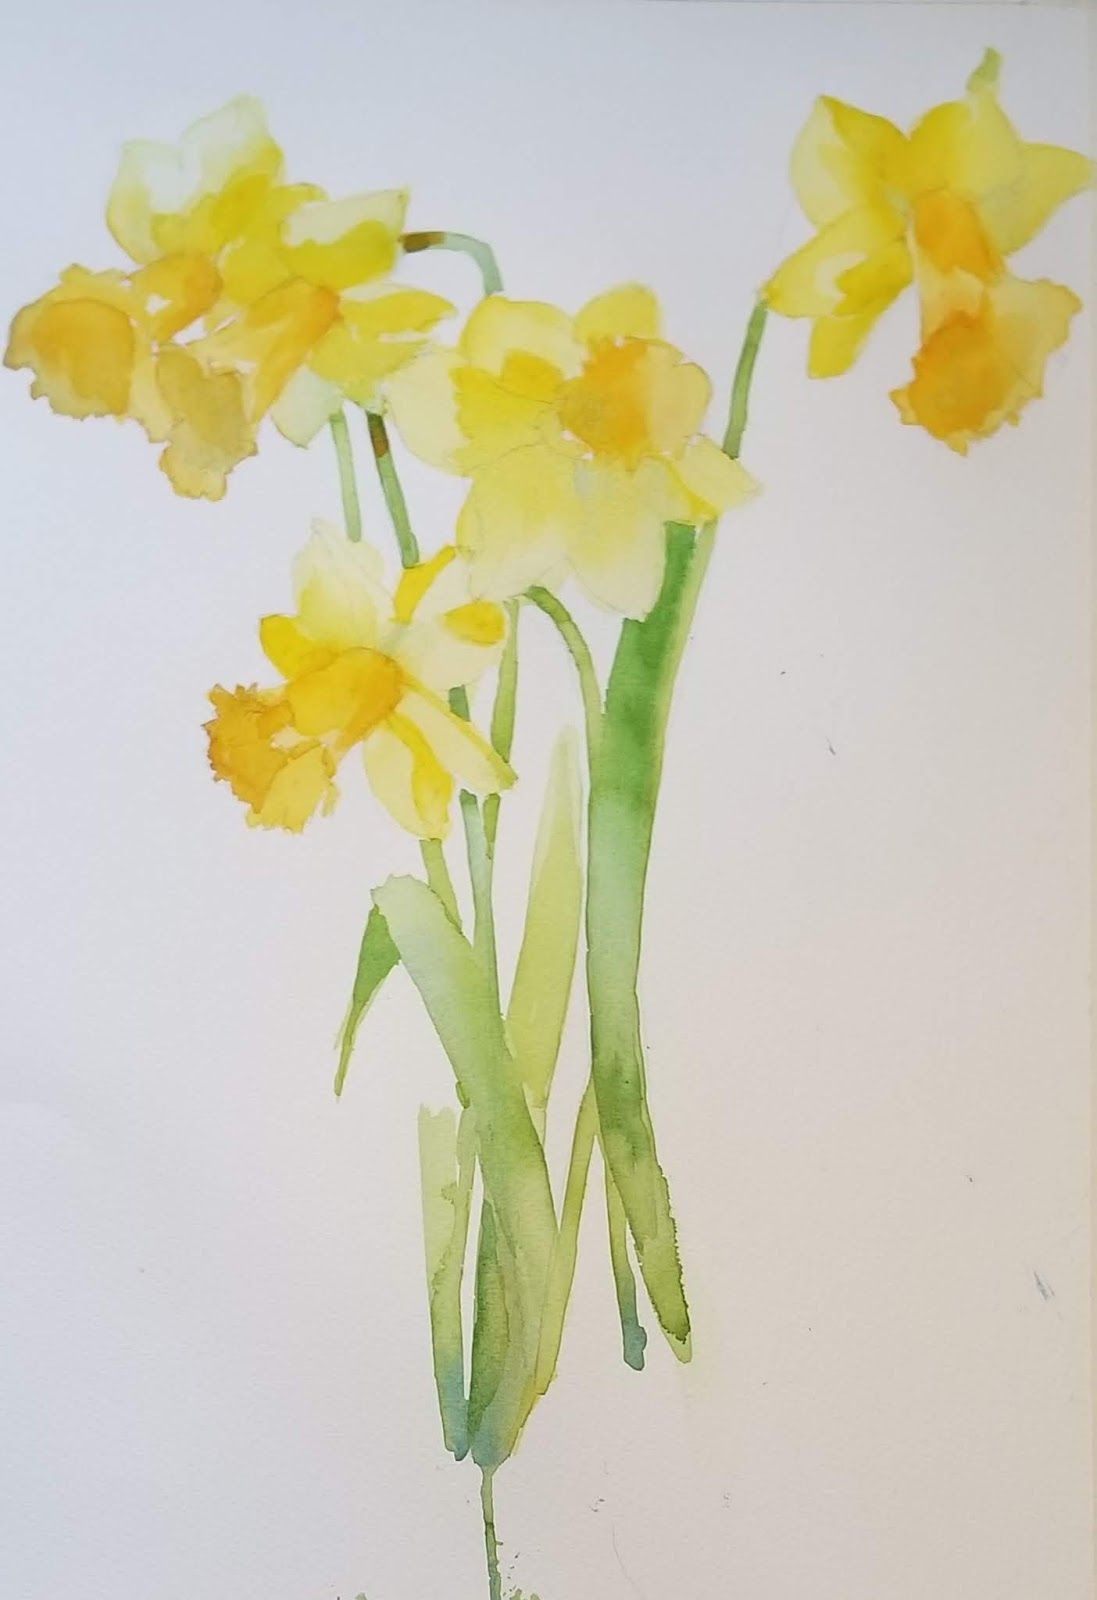 Laura S Watercolor Floral Painting Flower Card For Beginners I Wandered Lonely A Cloud Daffodil Symbol